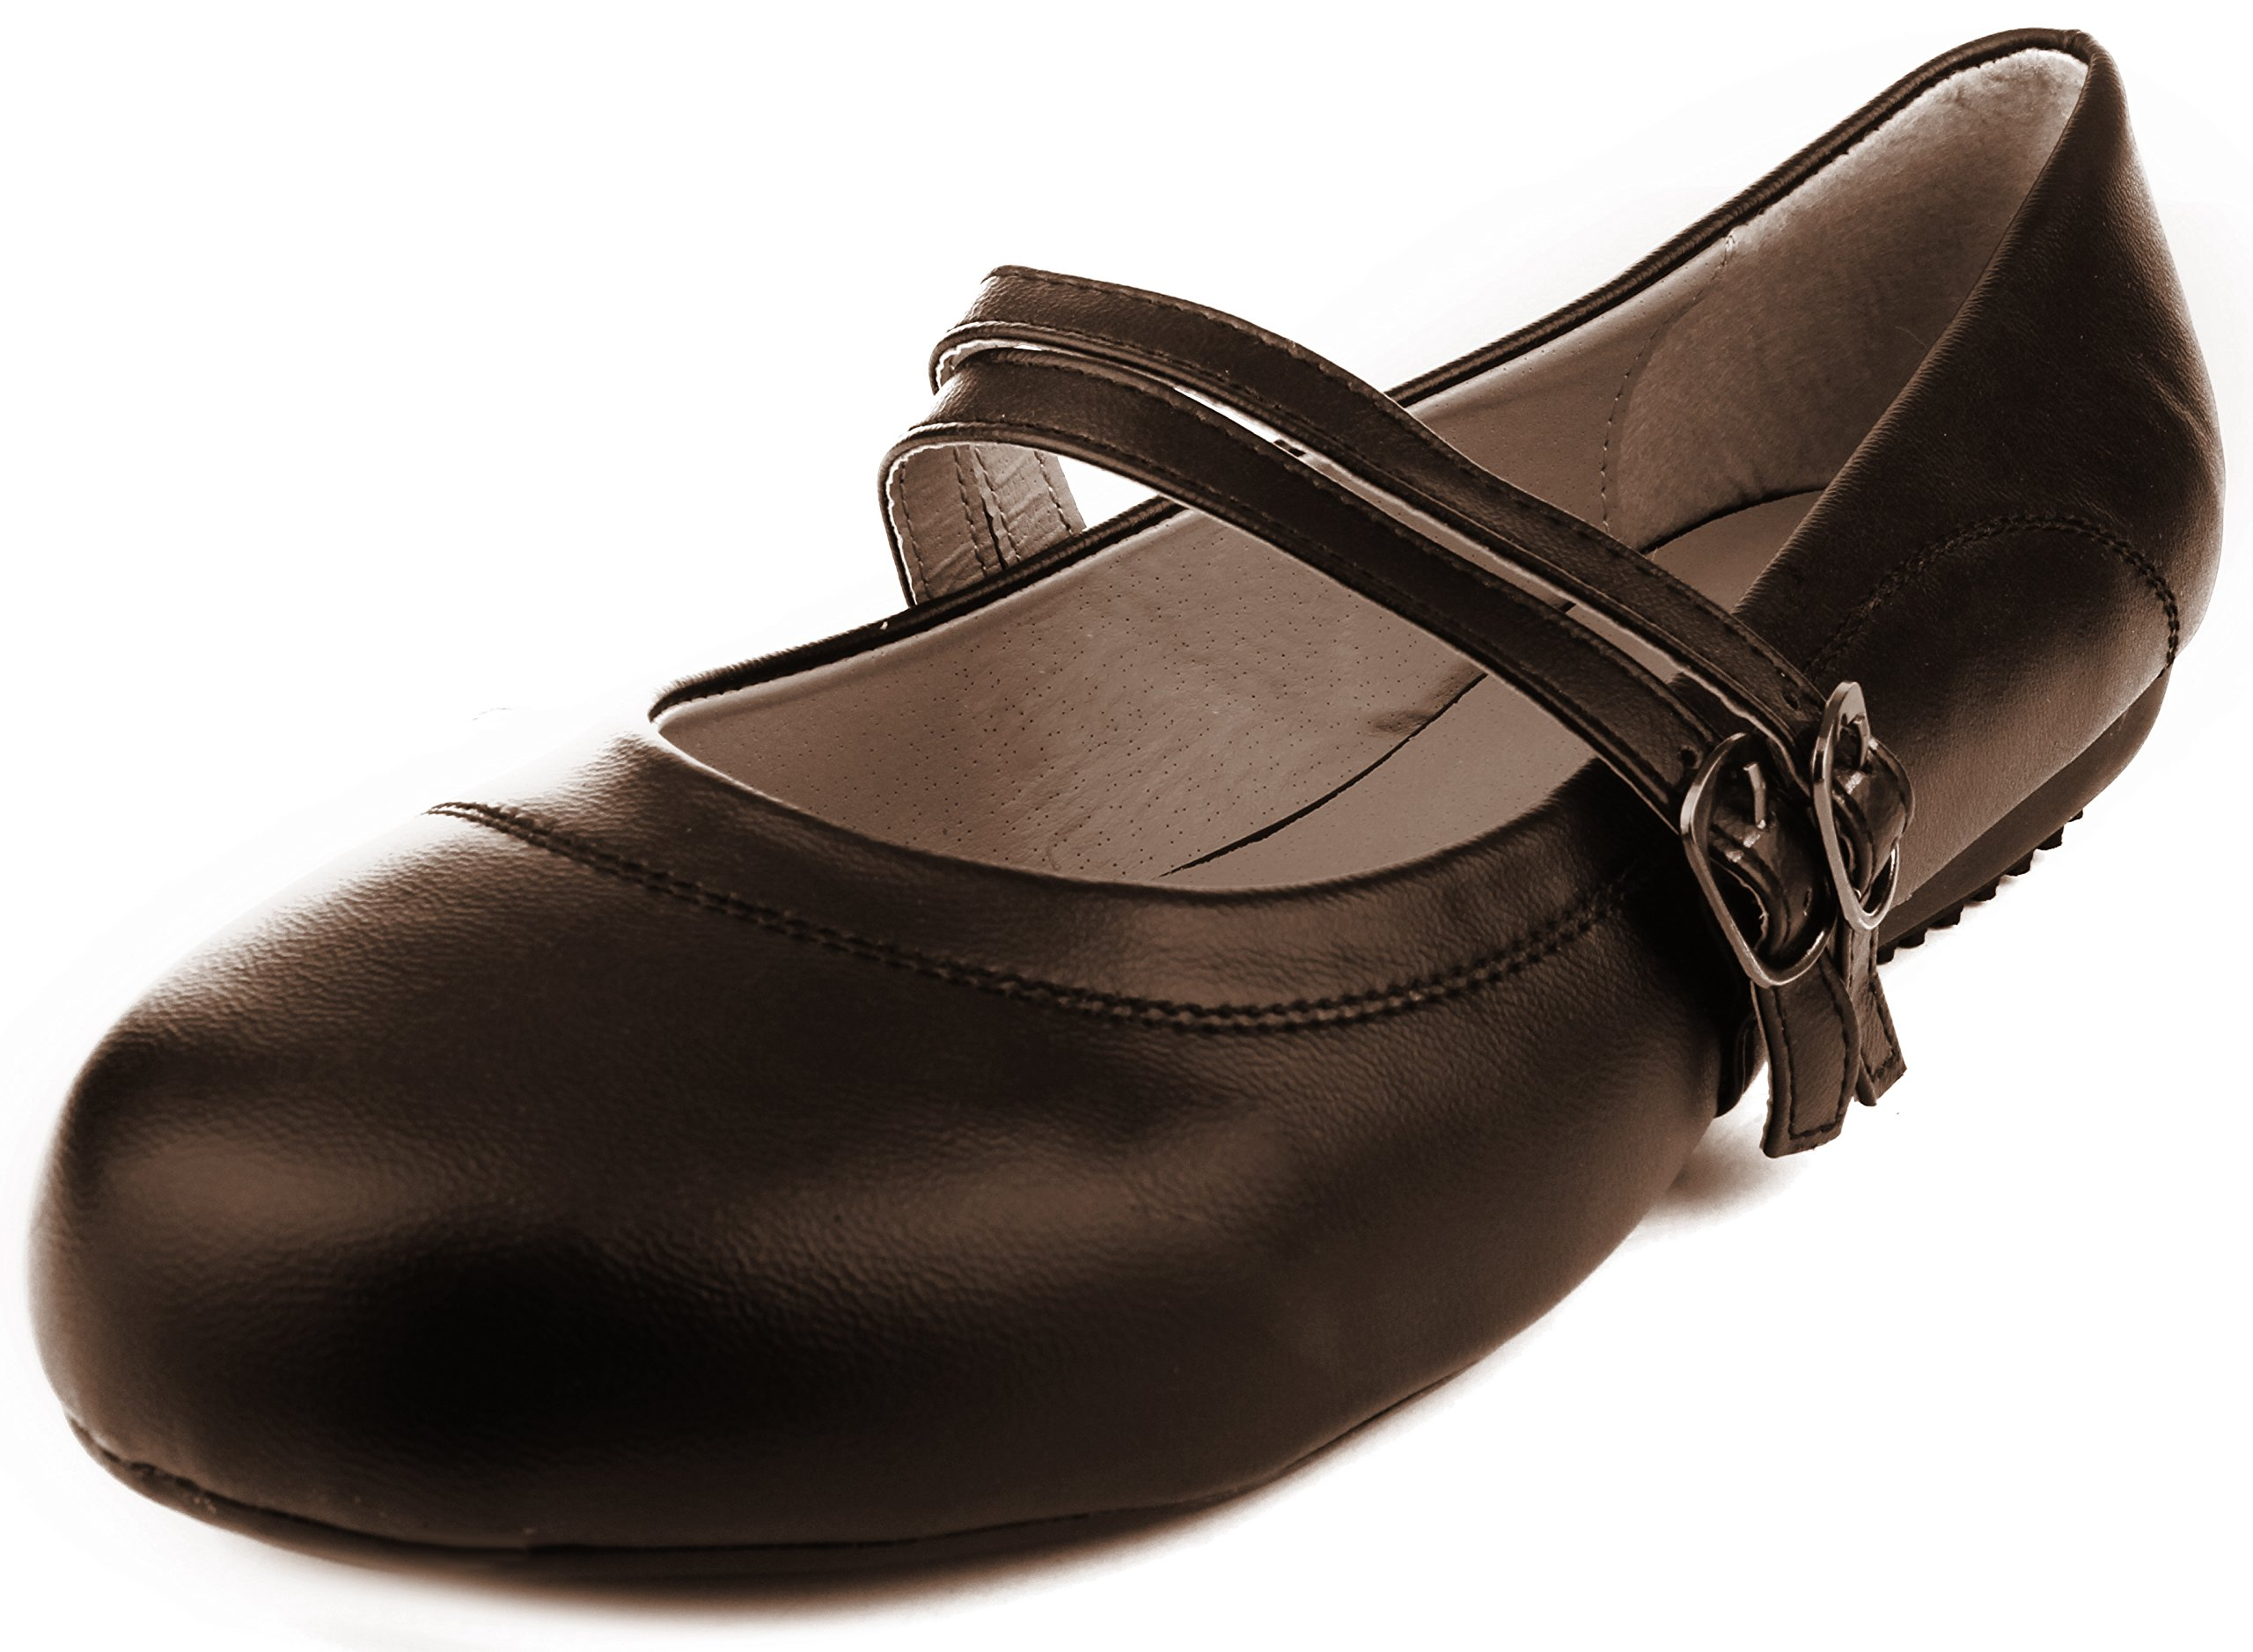 Enimay Women's Business Casual Mary Jane Double Strap With Buckle Dress Shoe Brown Size 7.5